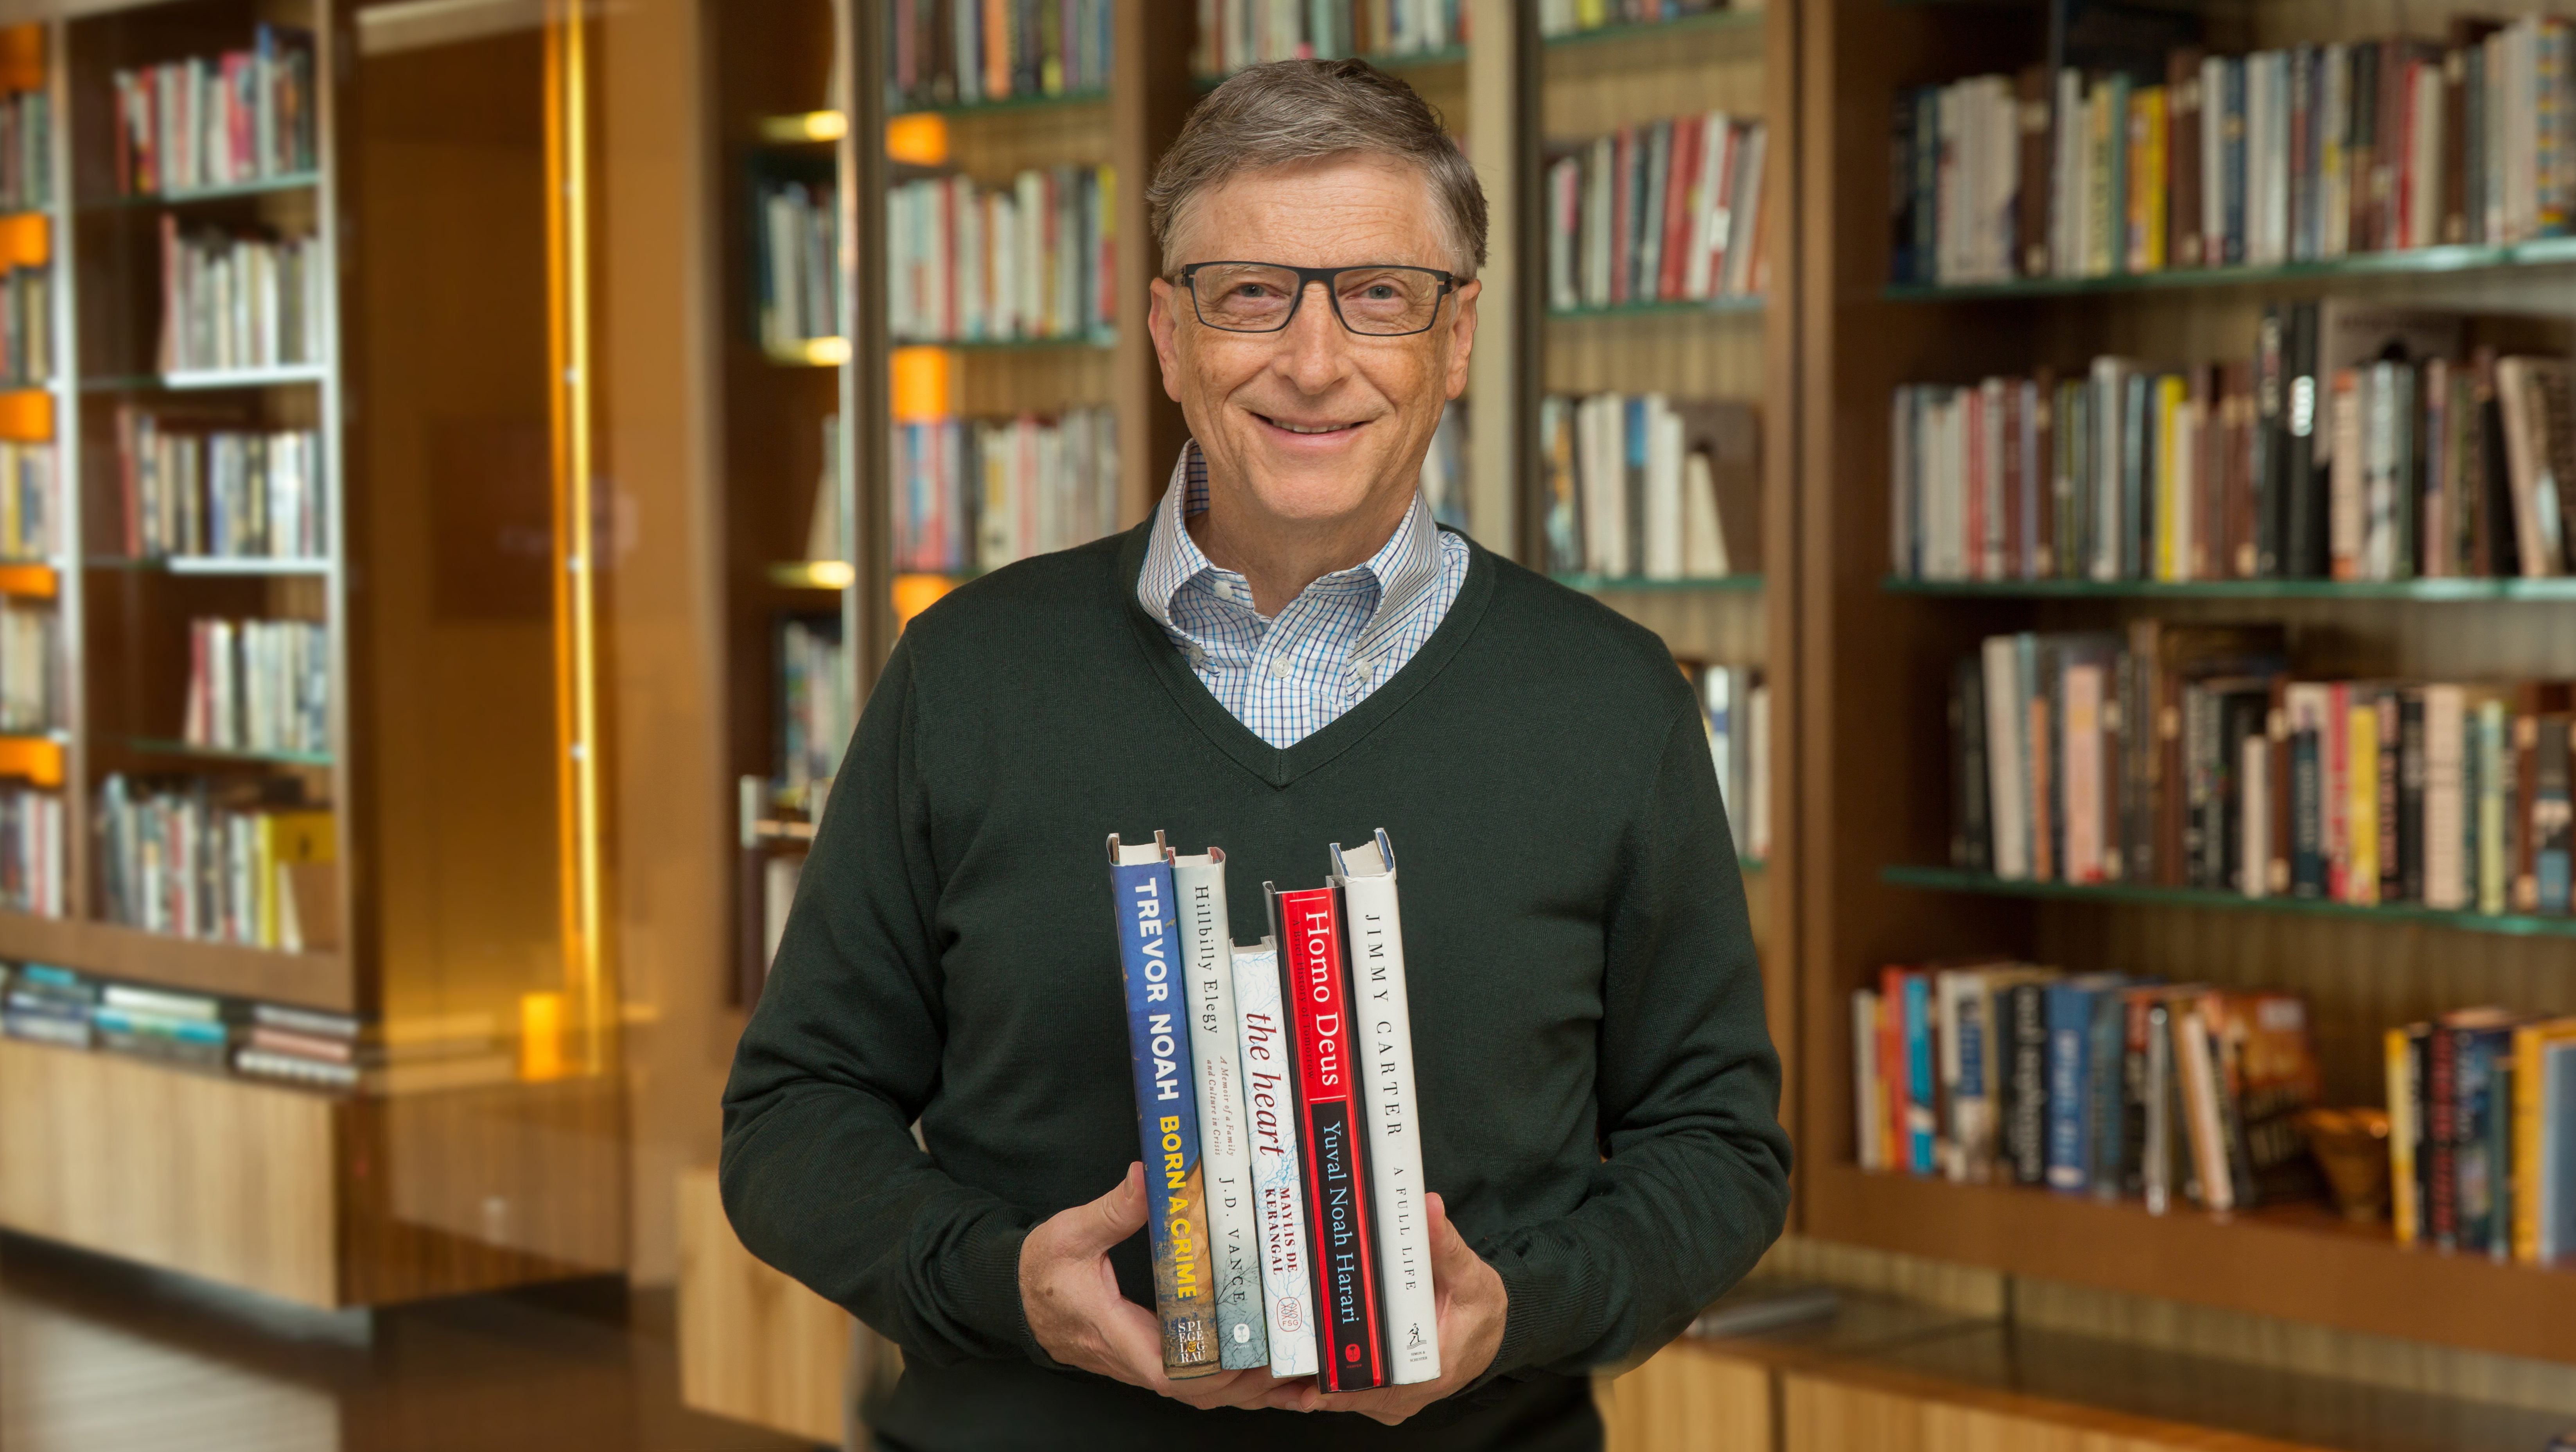 Bill Gates made which website for free textbooks for ...